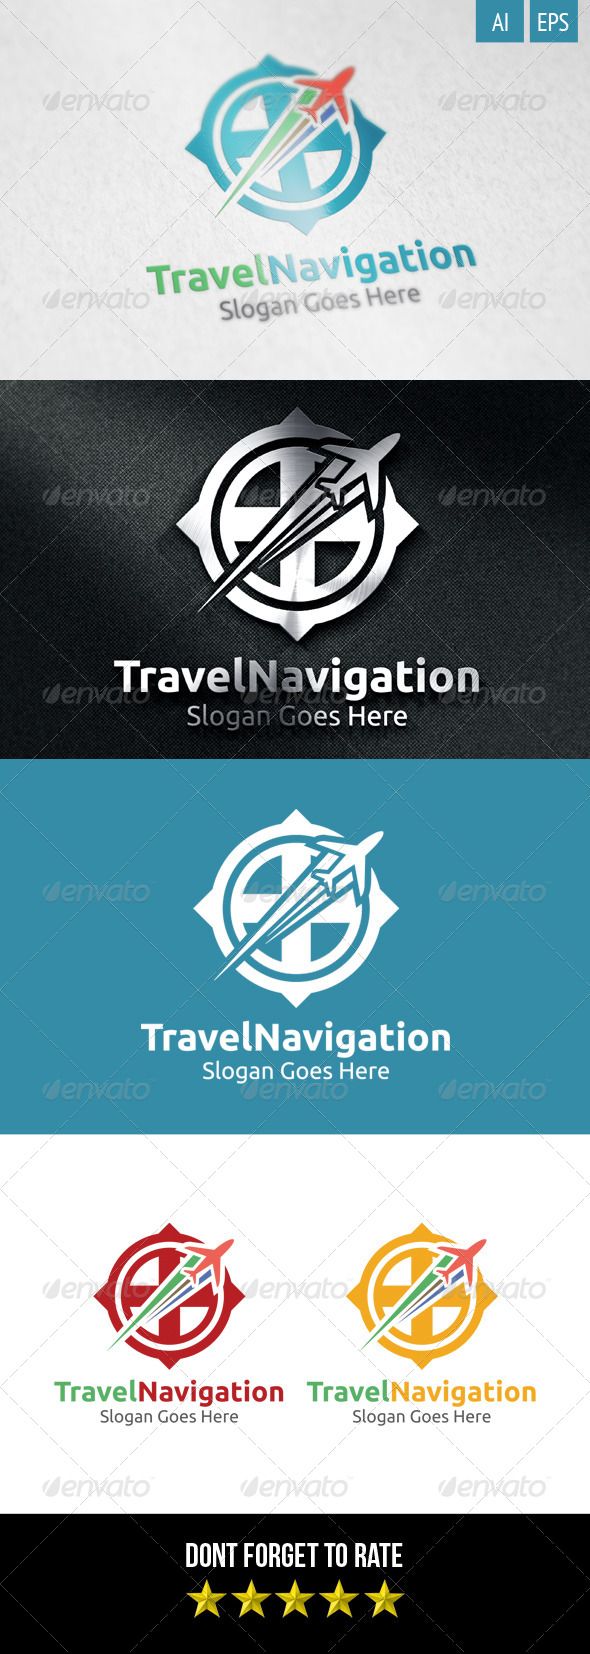 GraphicRiver Travel Navigation Logo 8499009